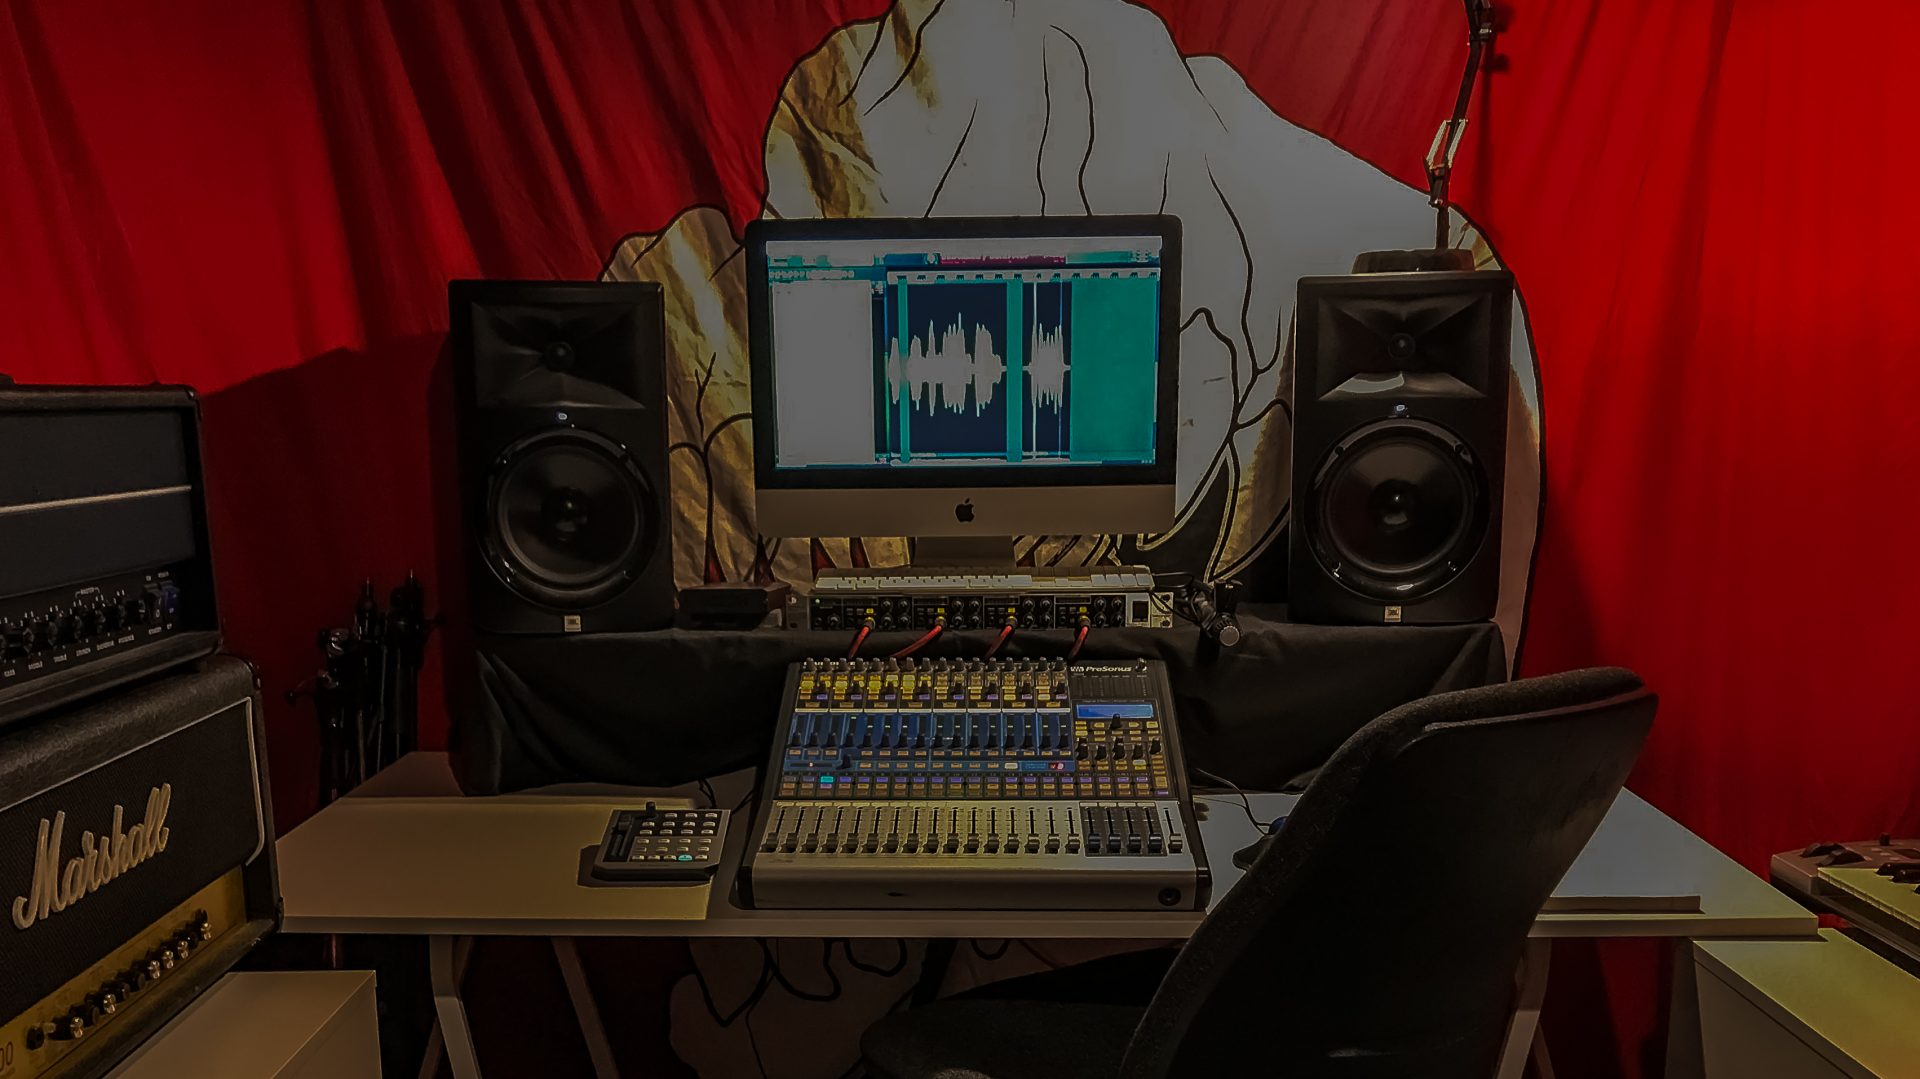 wall of sound recording studio edinburgh studio specialising in heavy music. Black Bedroom Furniture Sets. Home Design Ideas